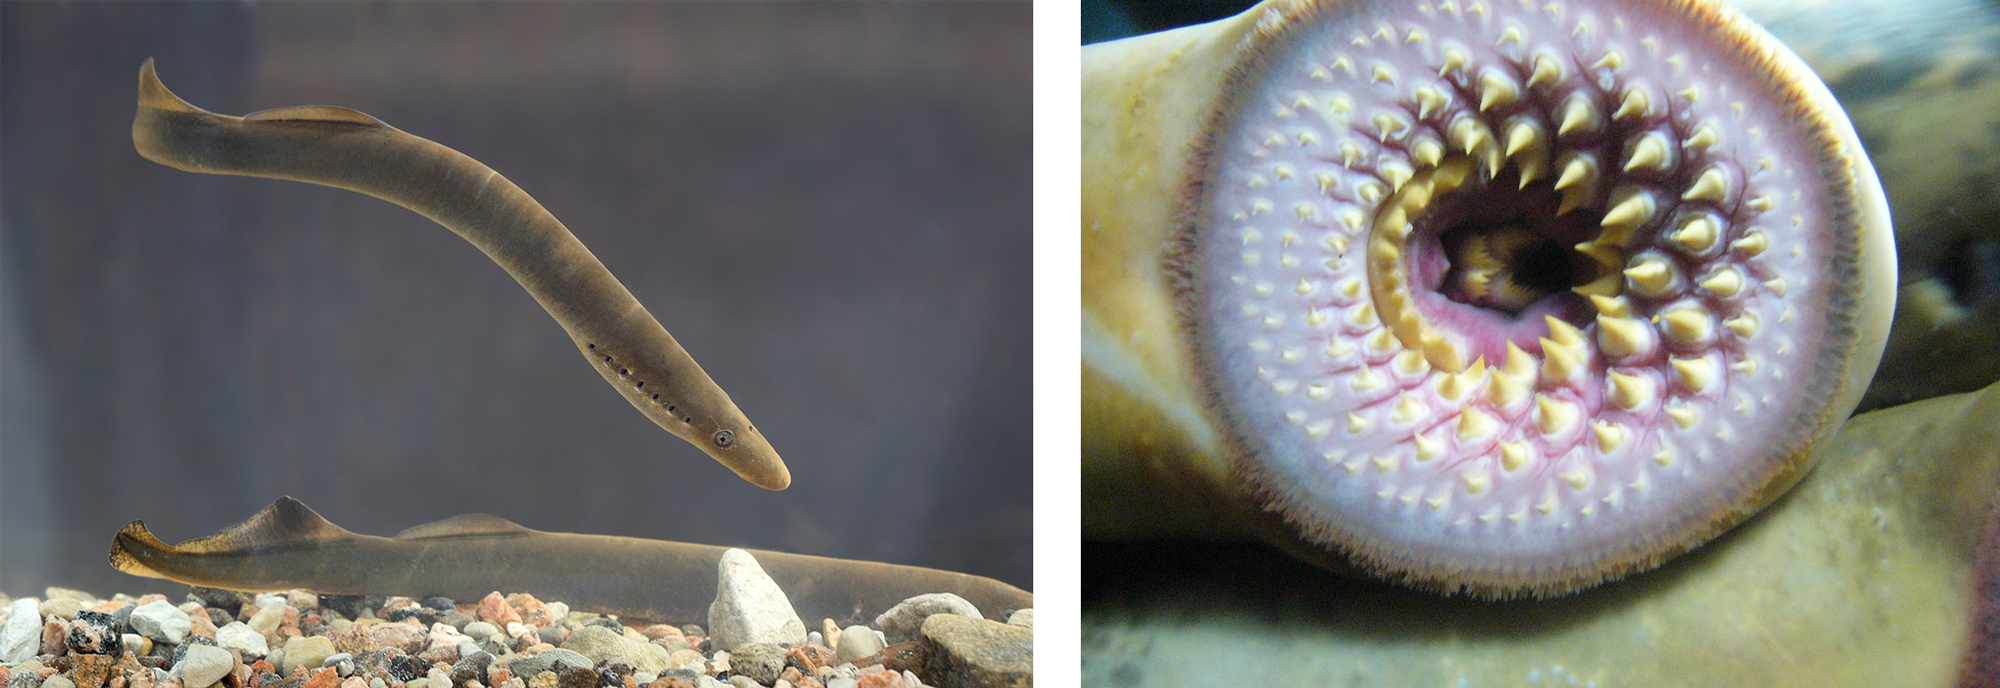 Photographs of lampreys.